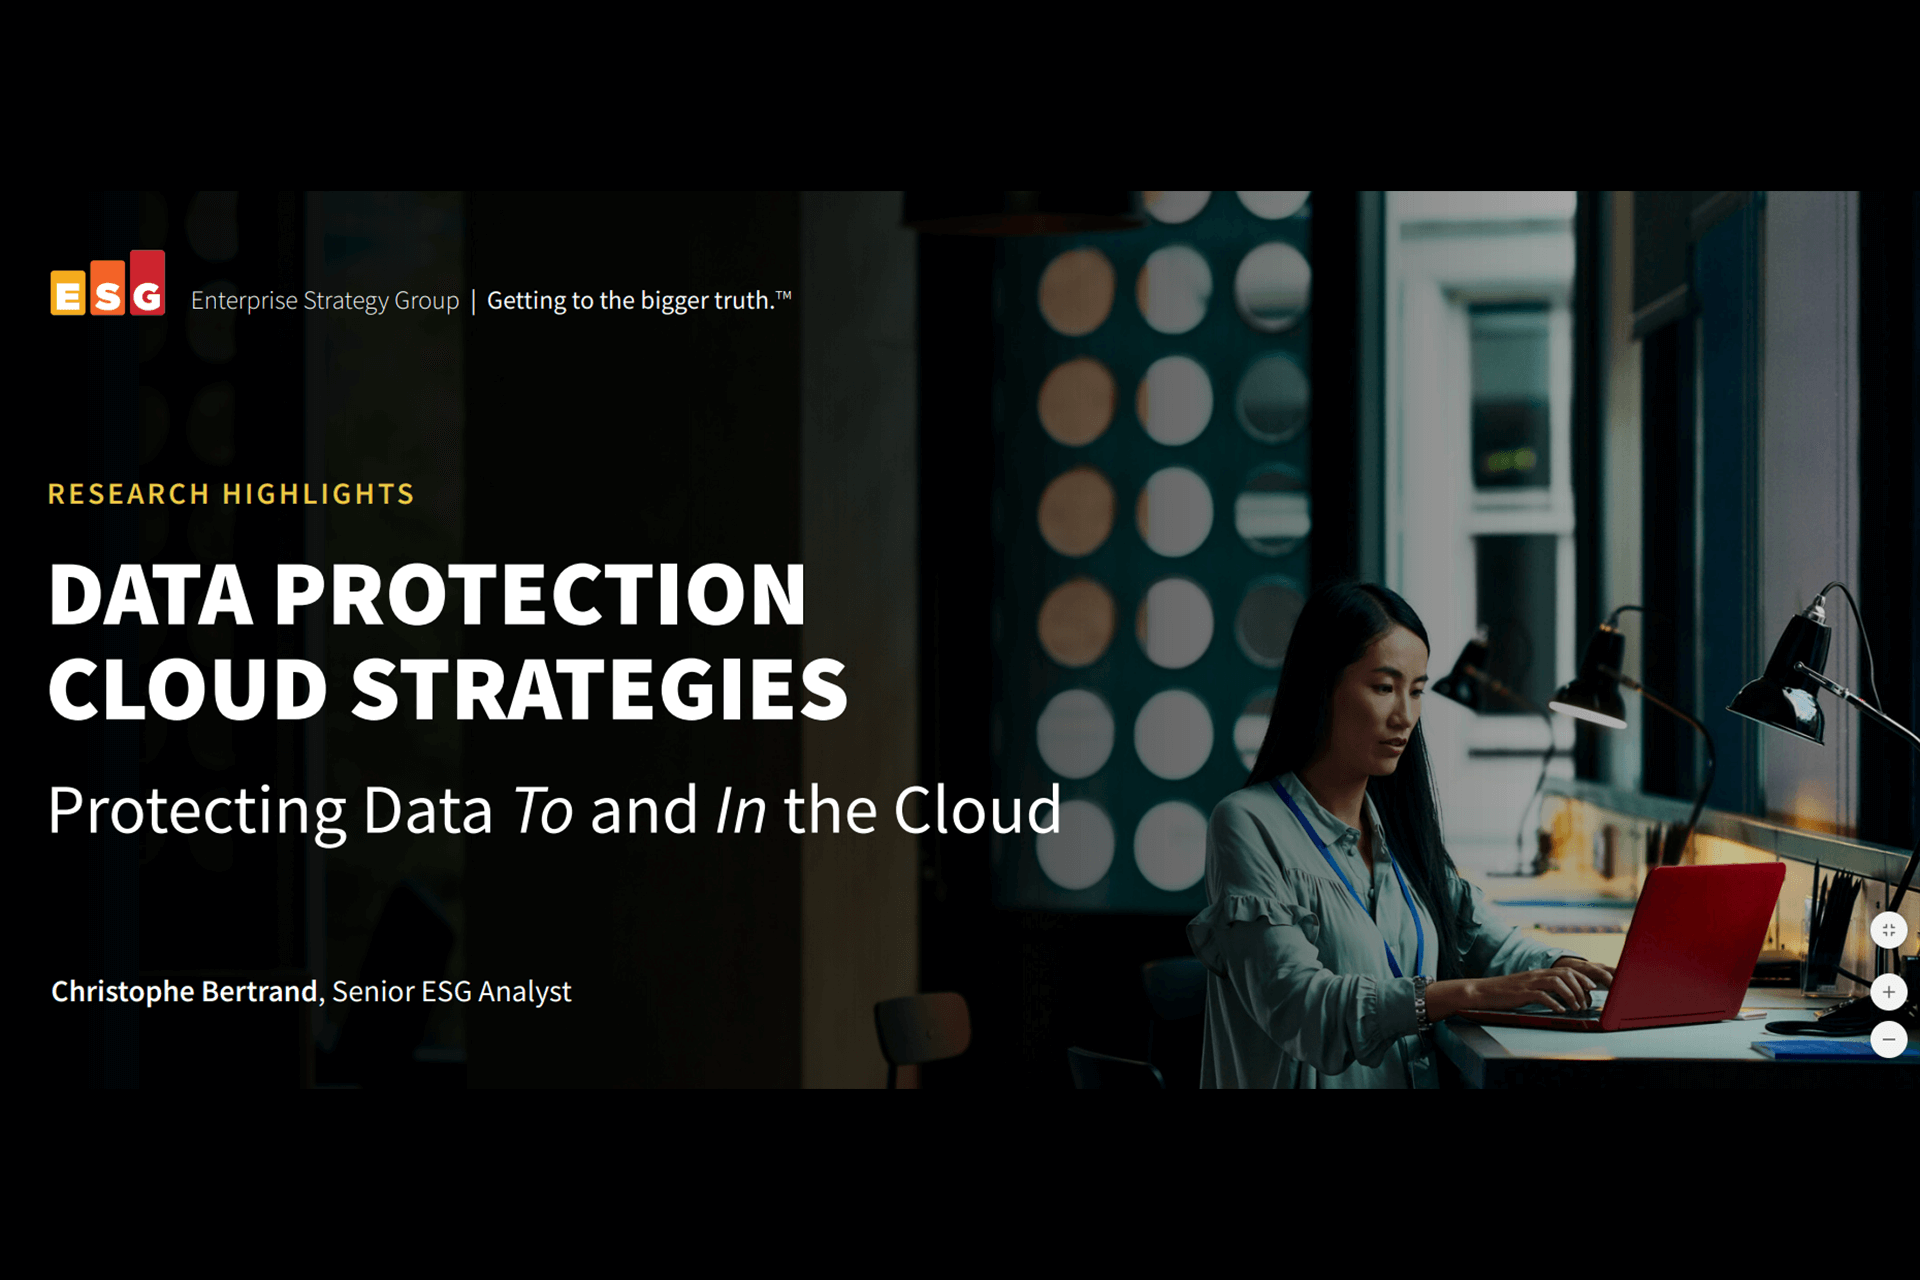 Data Protection Cloud Strategies